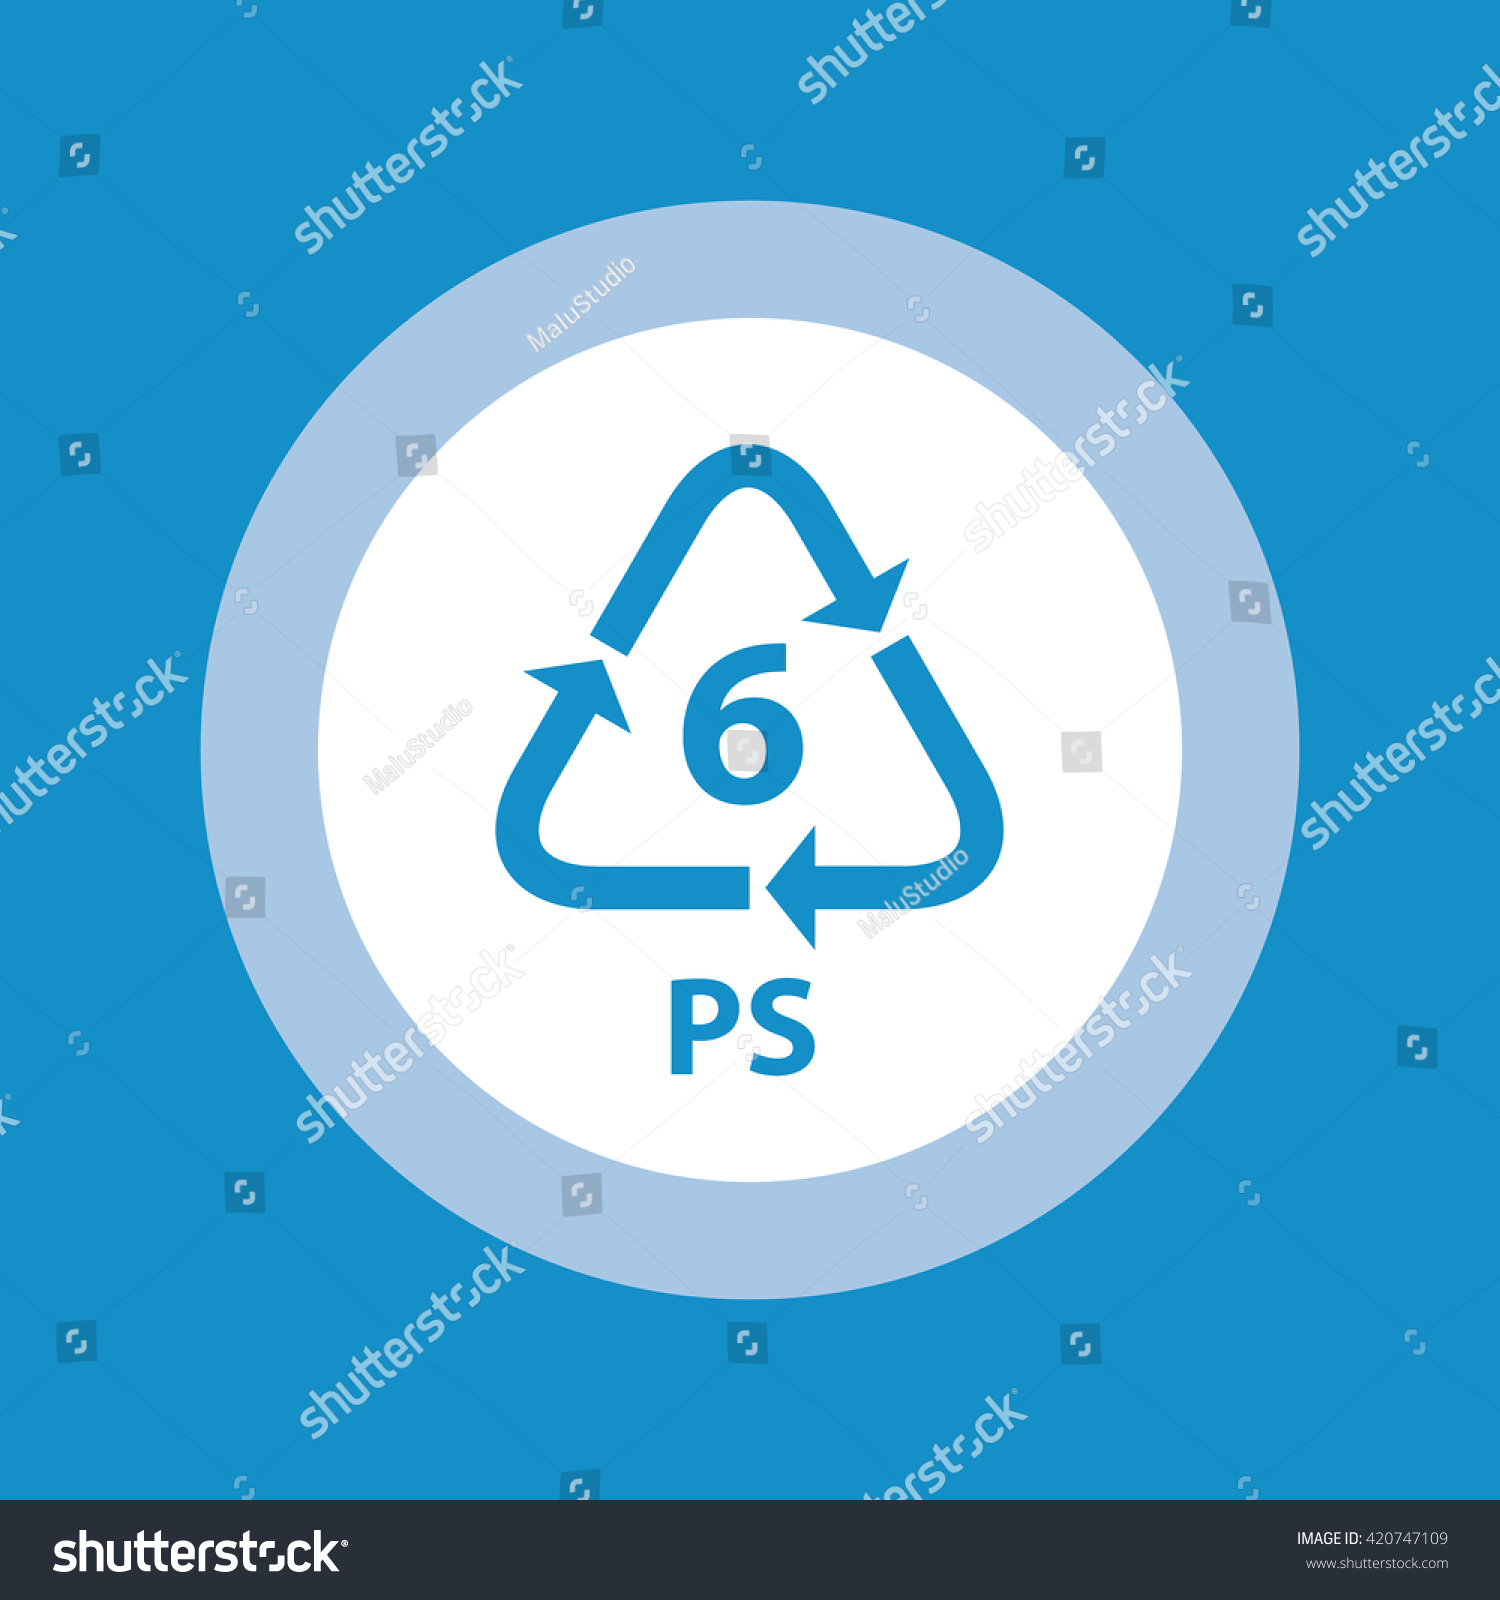 Playstation stock symbol image collections symbol and sign ideas plastic recycling symbol ps 6 vector stock vector 420747109 plastic recycling symbol ps 6 vector illustration buycottarizona